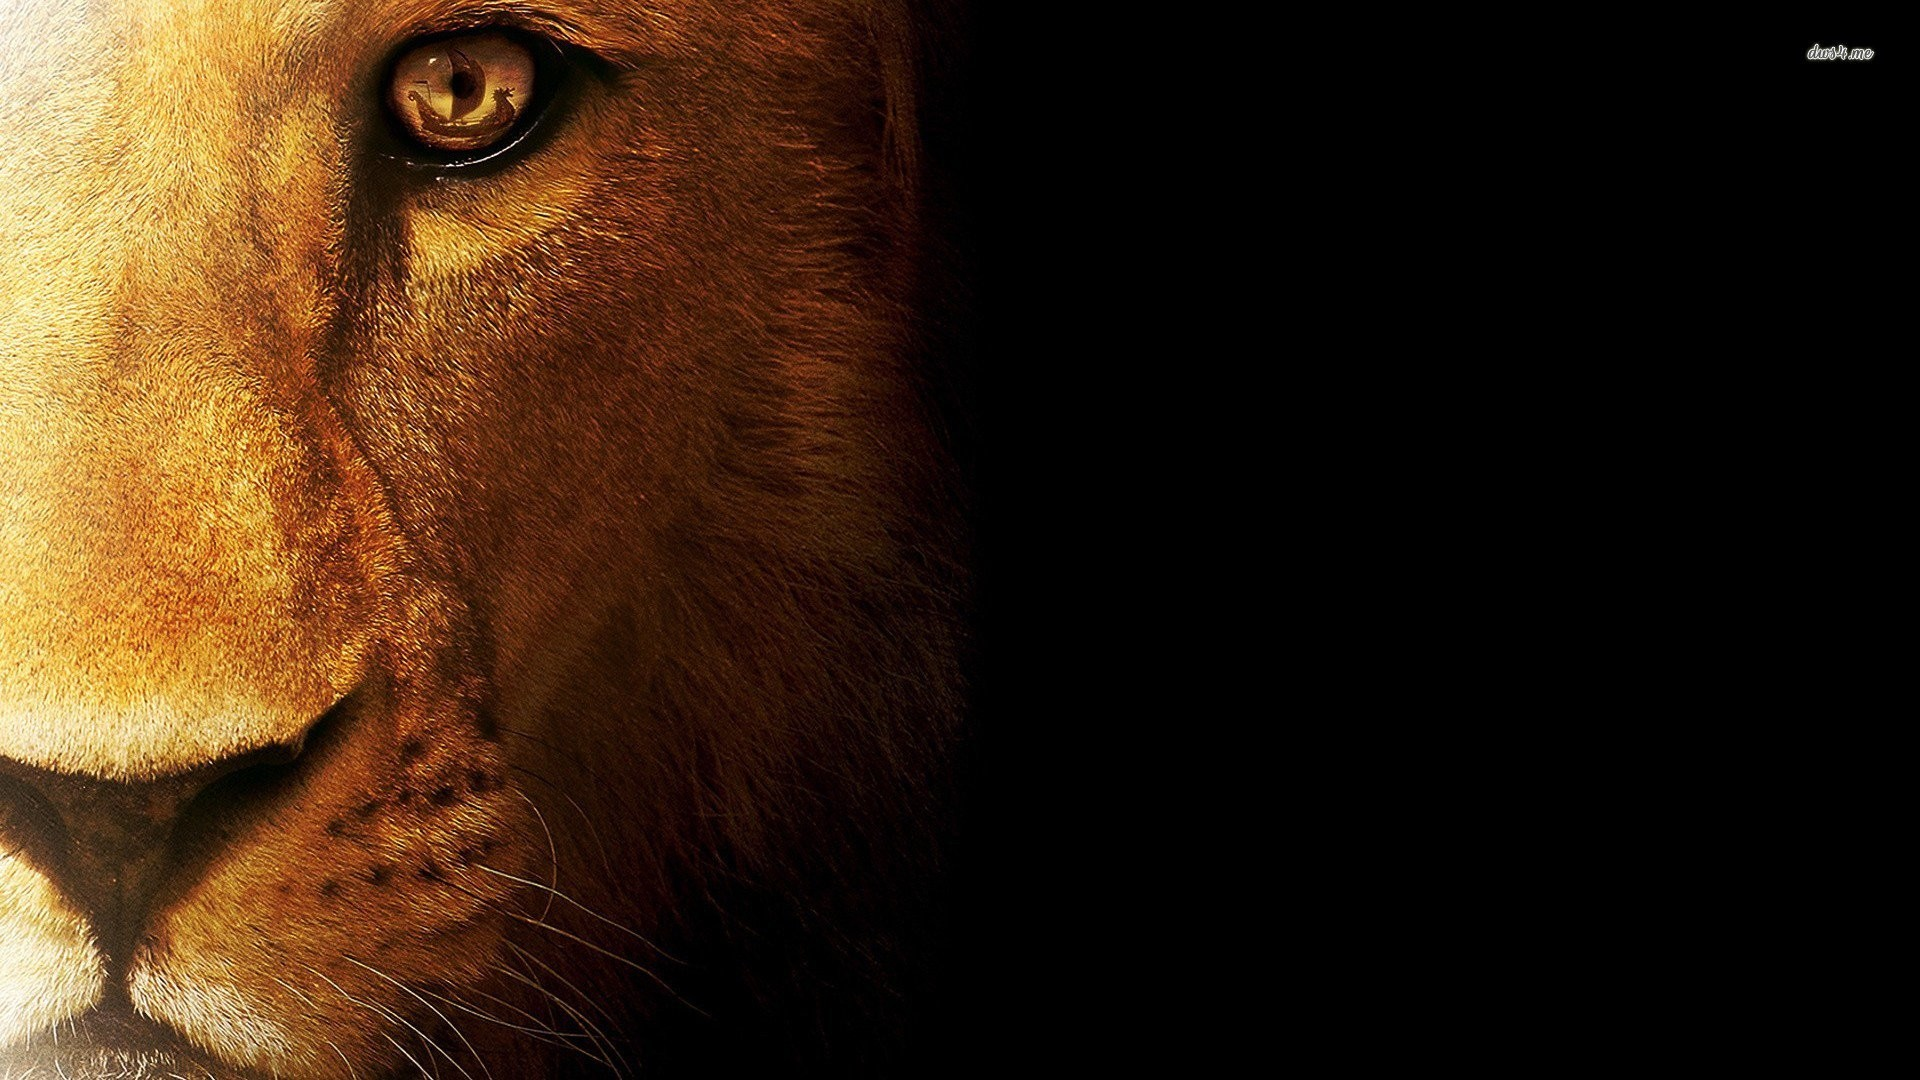 Lion HD Wallpapers Lion HD Pictures Free Download HD 1920×1080 Lion Image  Wallpapers (